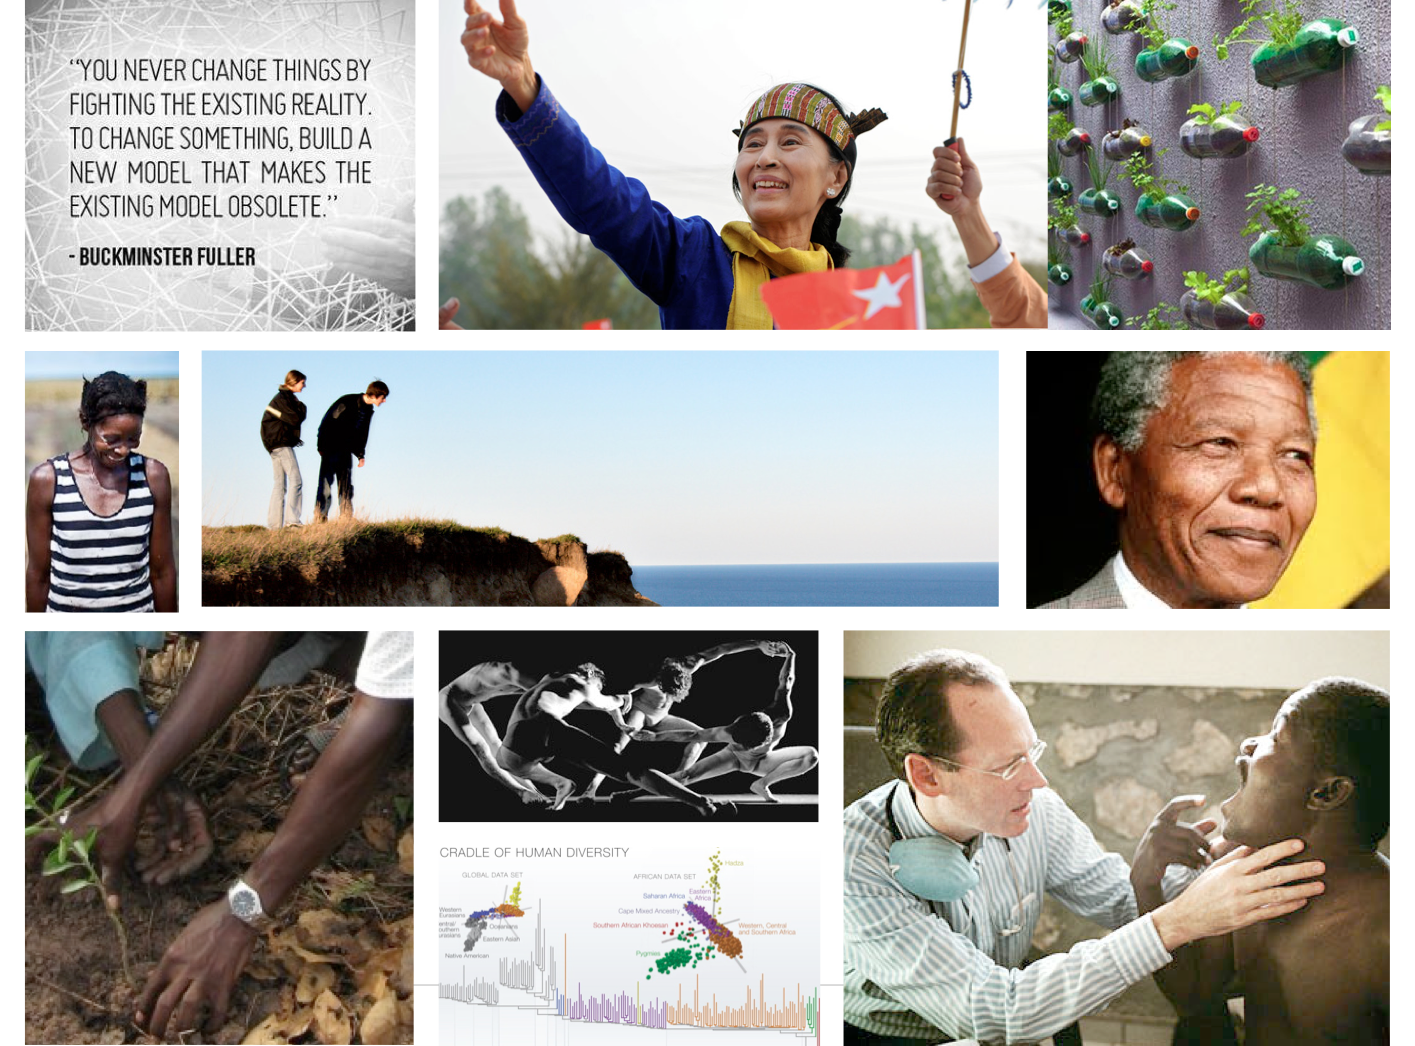 Moodboard evoking the brand attributes of the organization: engaging, life-changing, sustainable, humanitarian